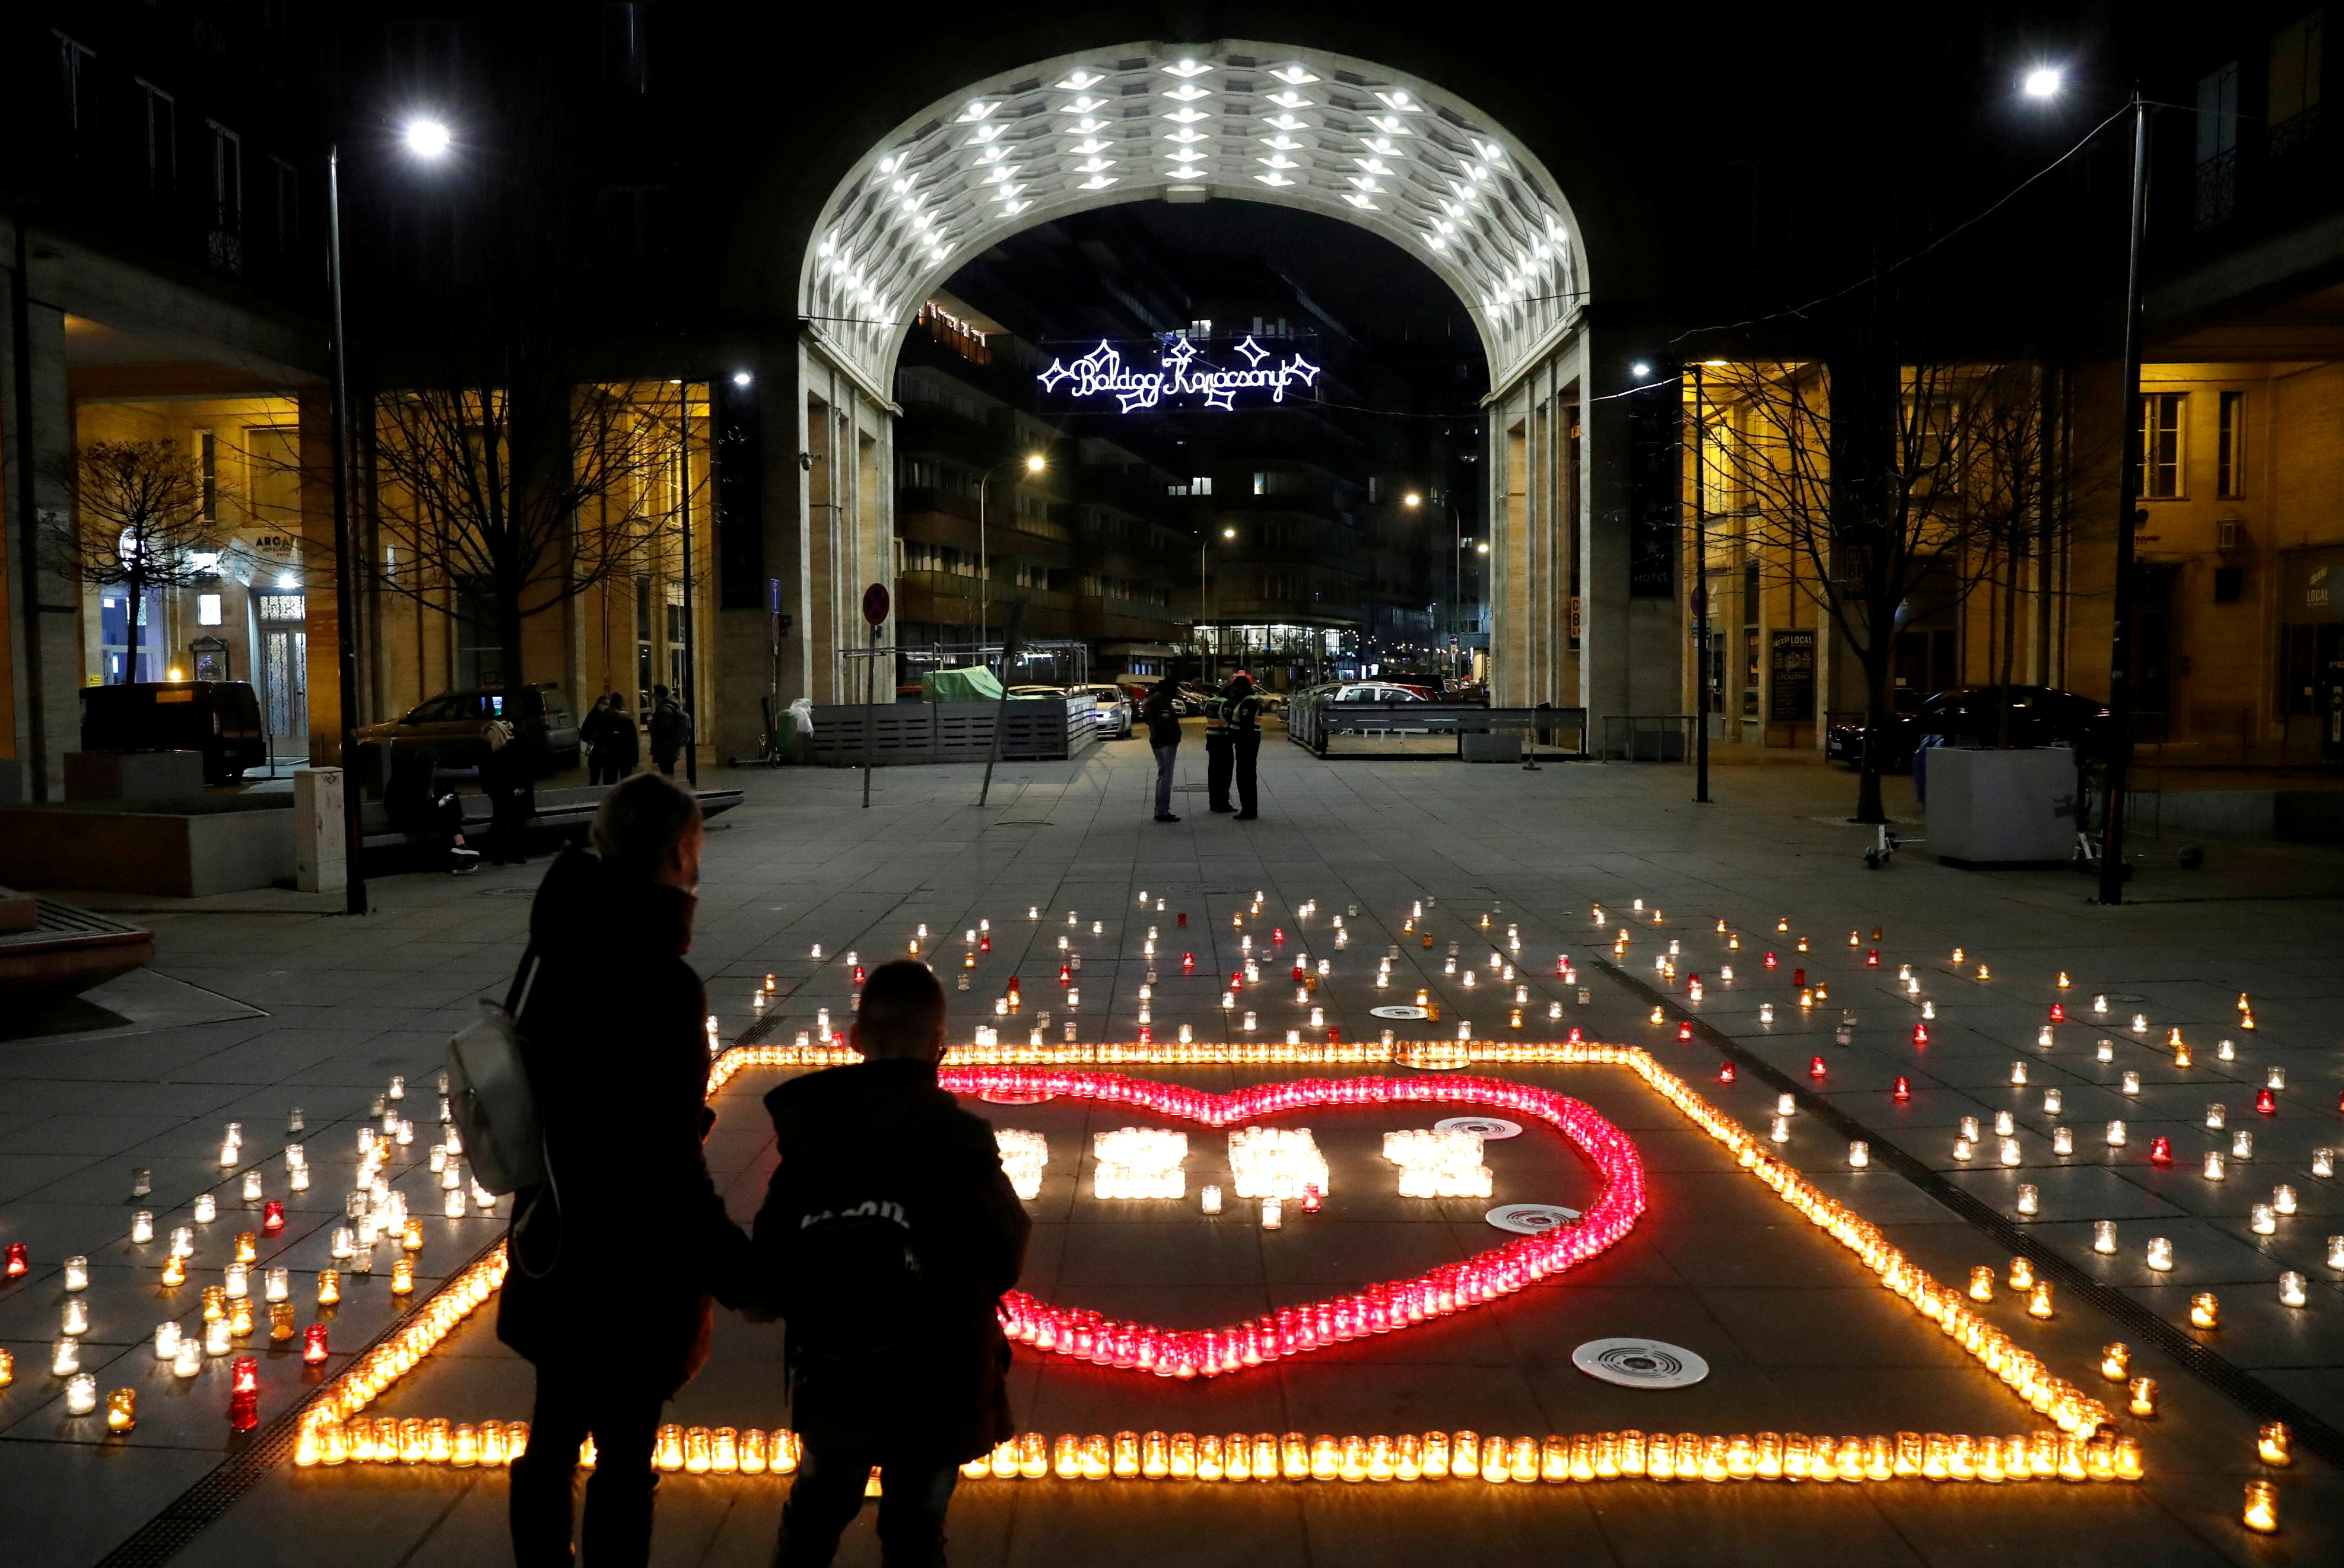 Candles are lit in memory of Hungary's coronavirus disease (COVID-19) victims in Budapest, Hungary, December 21, 2020. REUTERS/Bernadett Szabo/File Photo